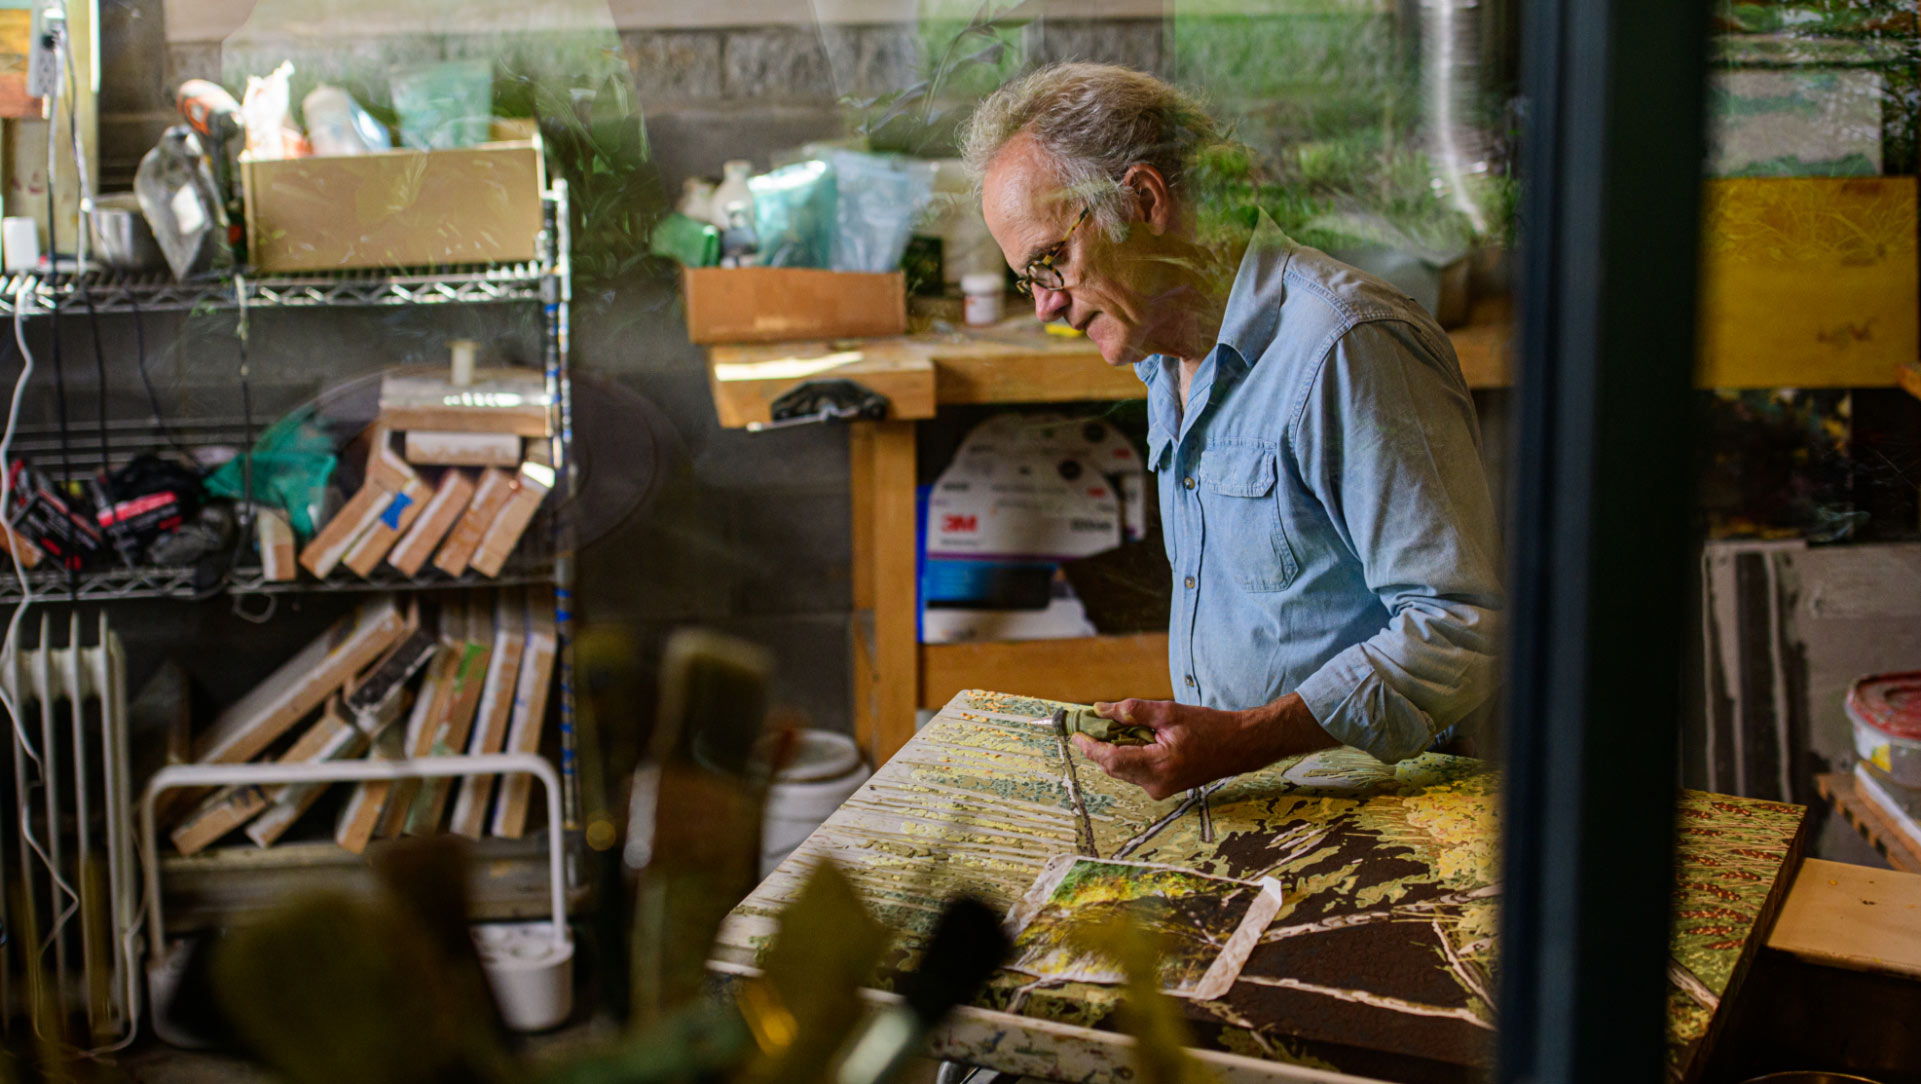 We see Lynn through the window to his studio, working on one of his frescoes.